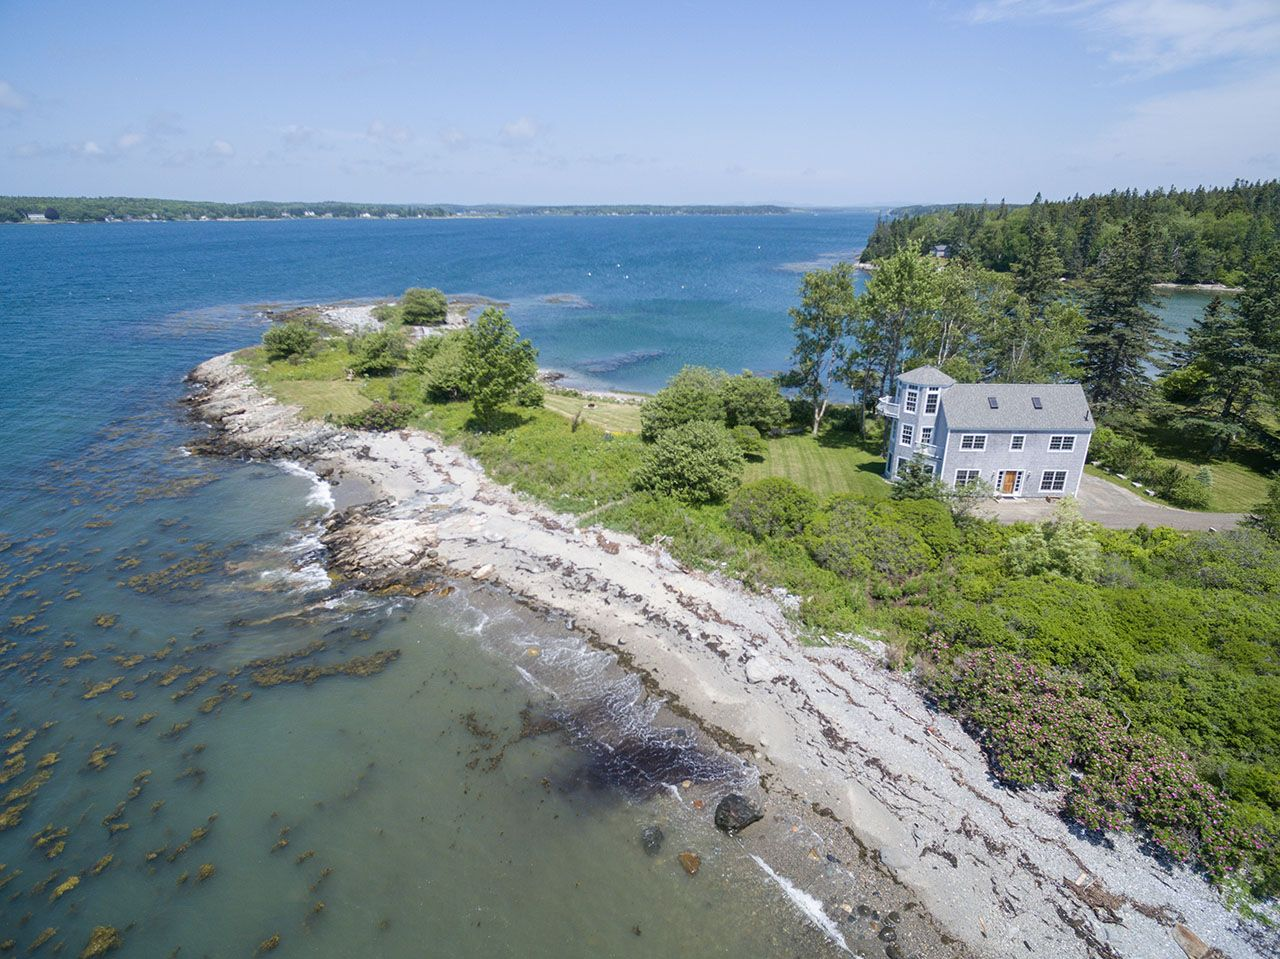 Single Family Home for Sale at Crazy Point Lane 13 Crazy Point St. George, Maine,04860 United States